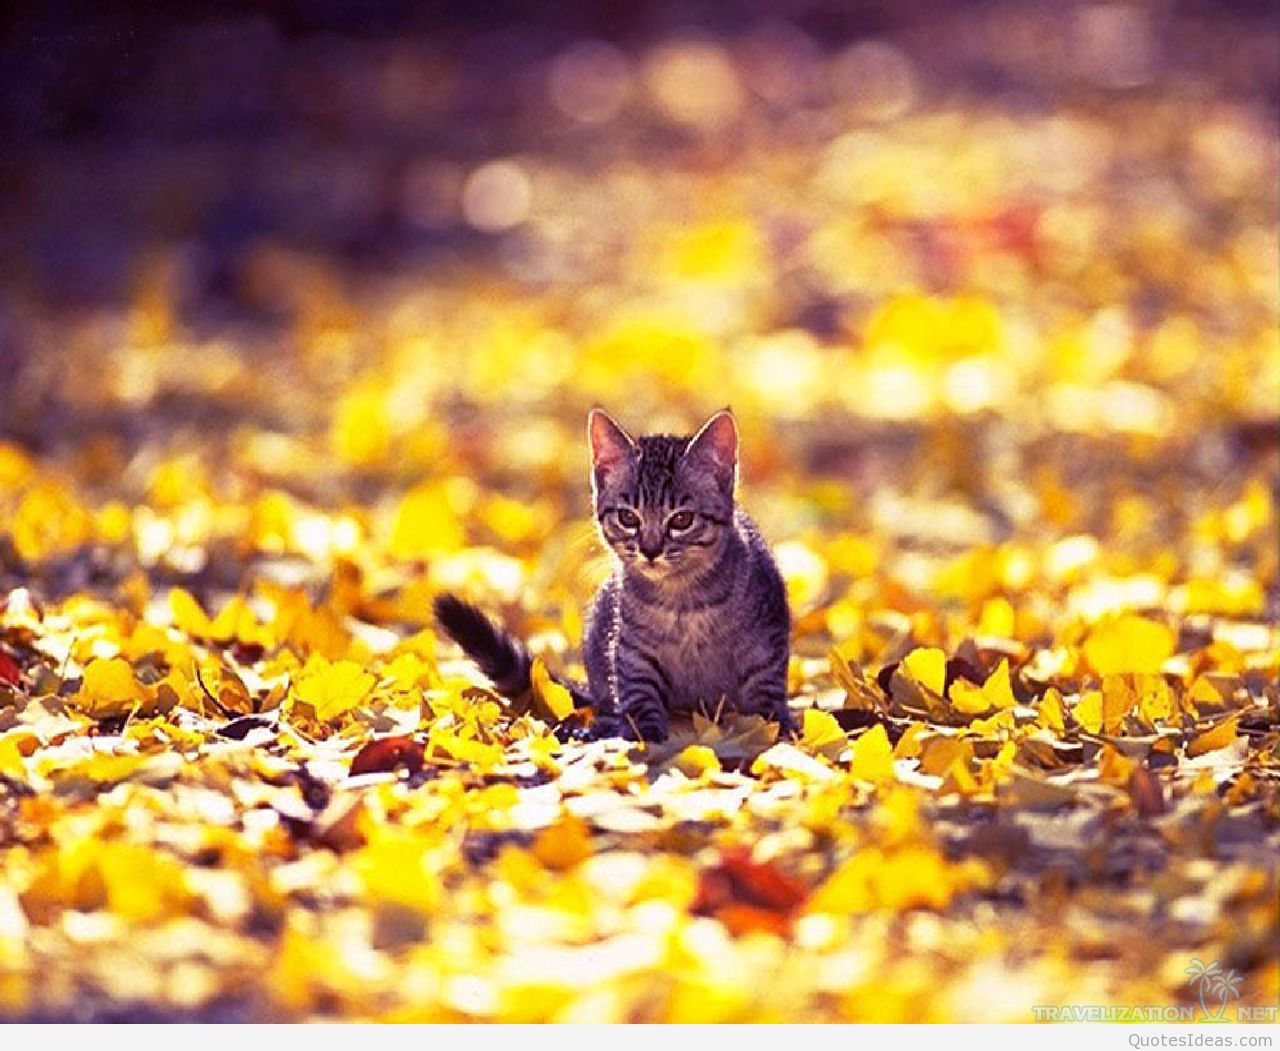 Amazingly Surprising Cats Wallpapers Travelizat Awesome - Cats And Autumn Hd - HD Wallpaper